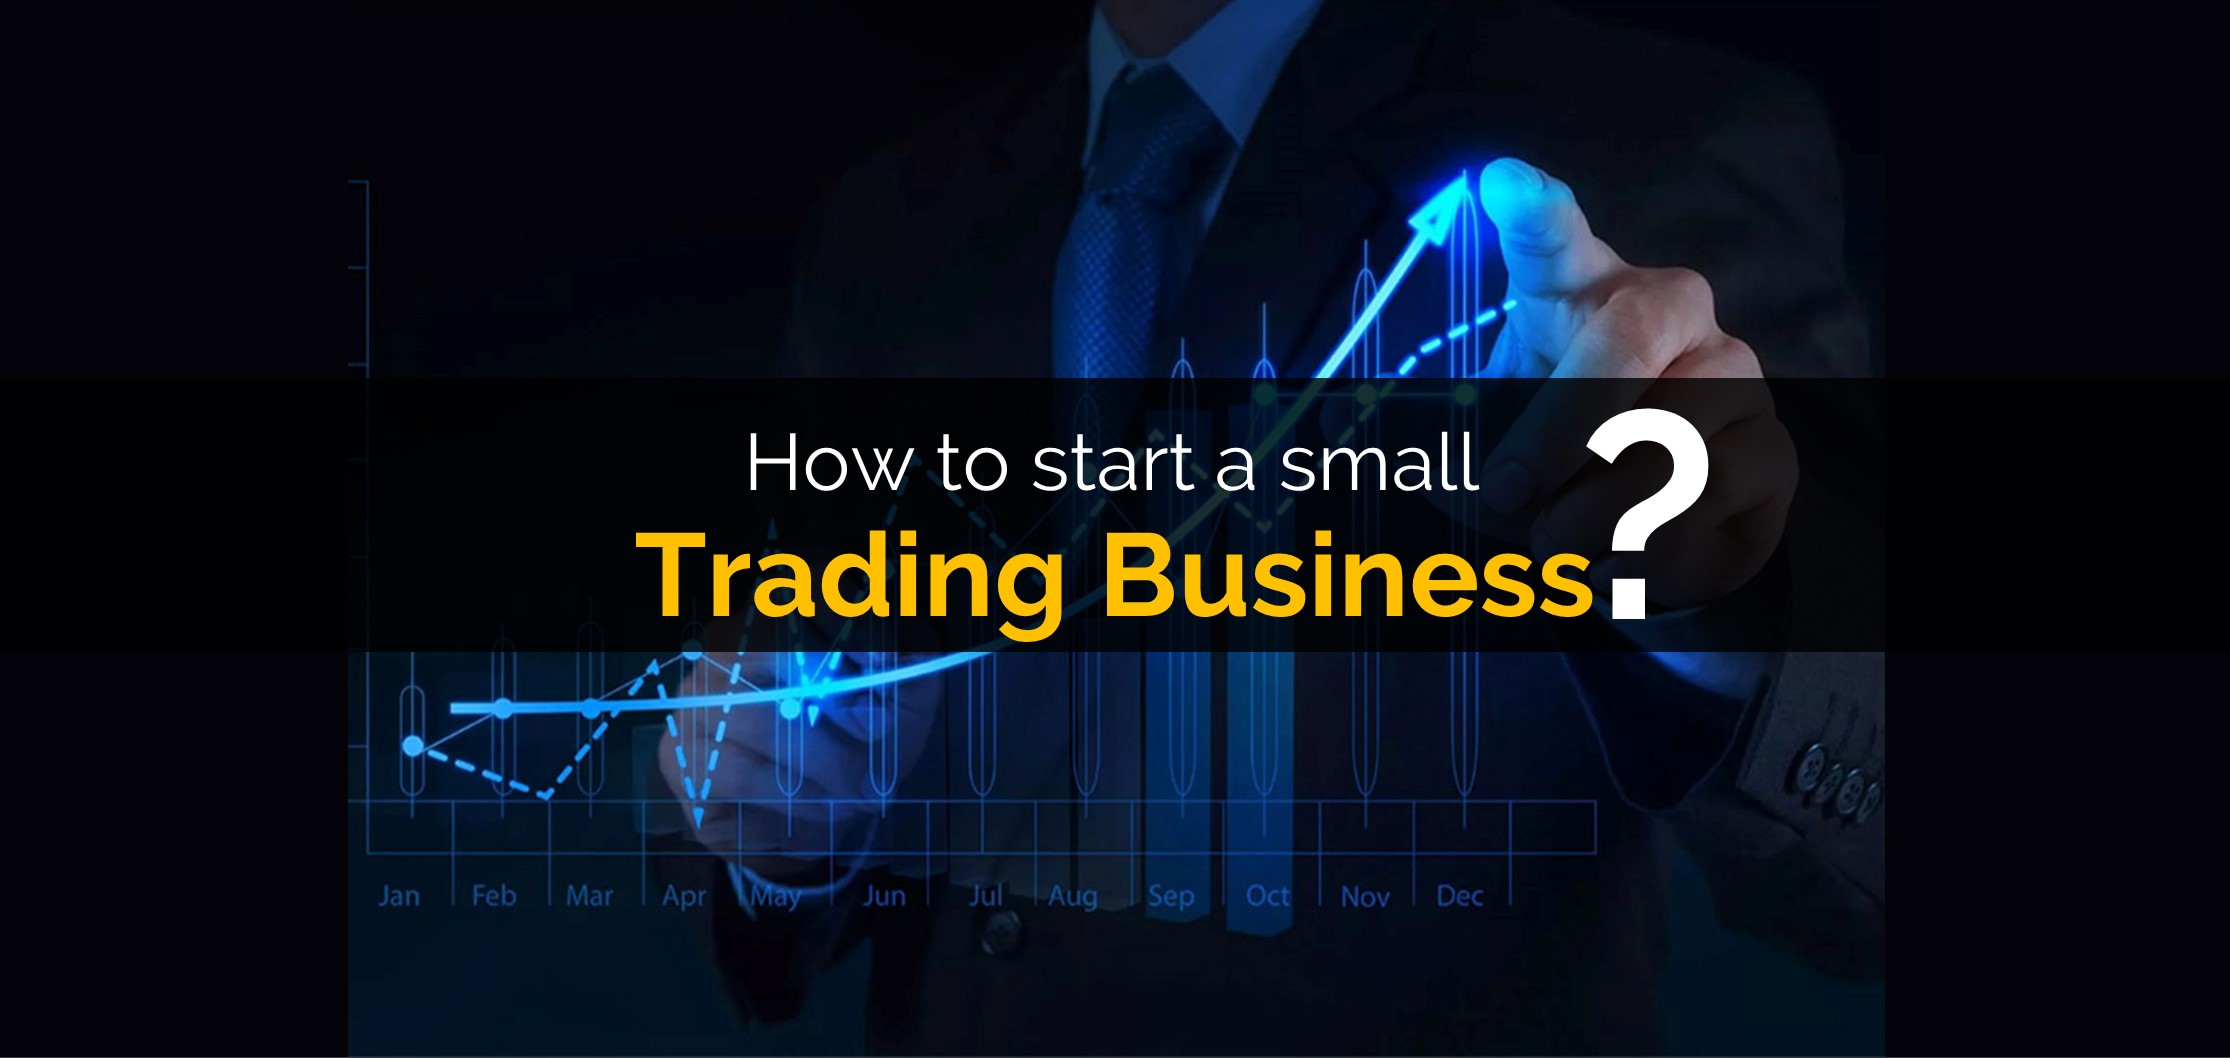 How to Start a Small Trading Business?